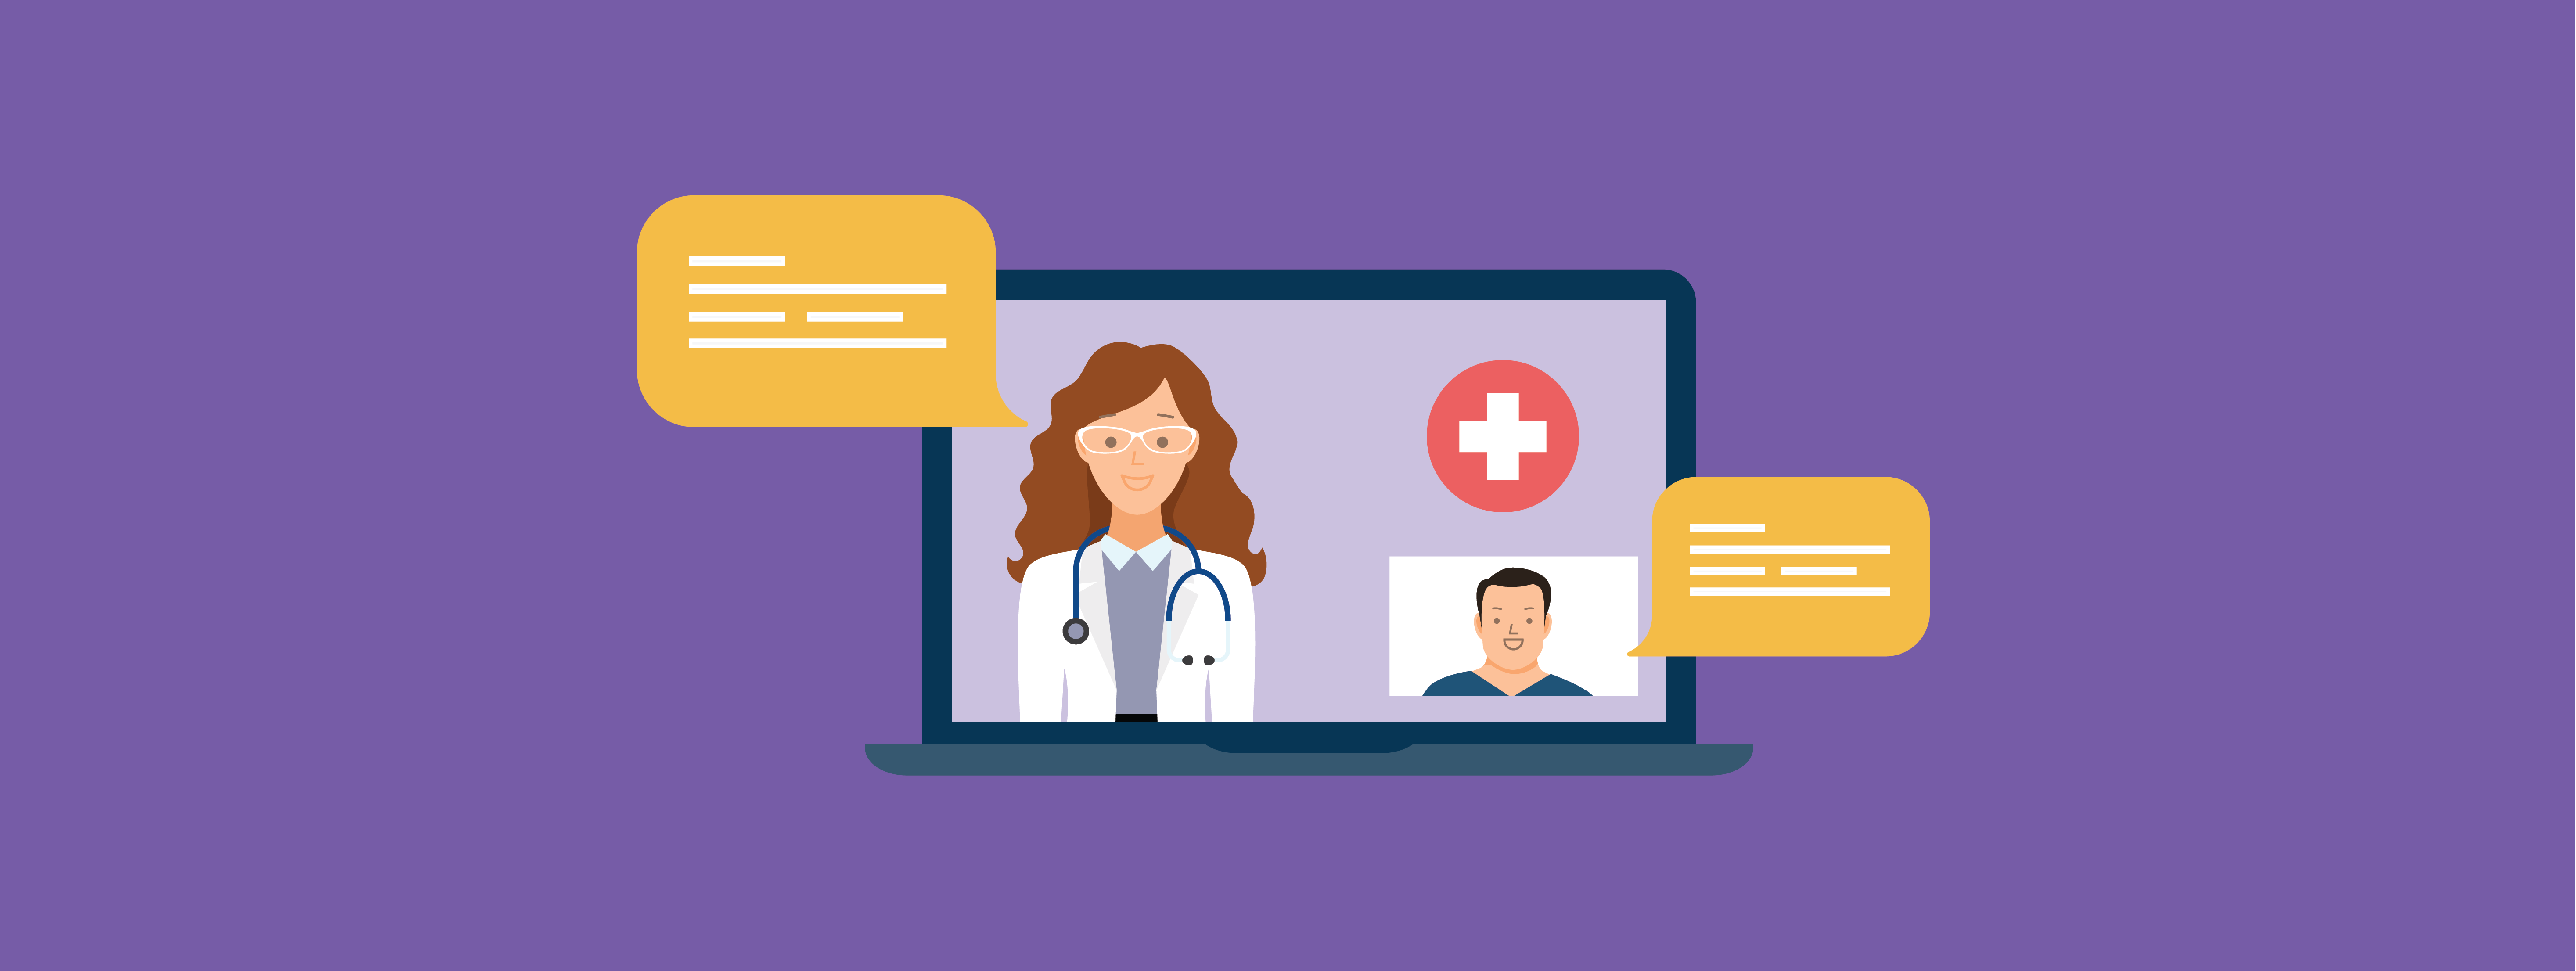 The Future is Now: Telehealth Booms Amid COVID-19